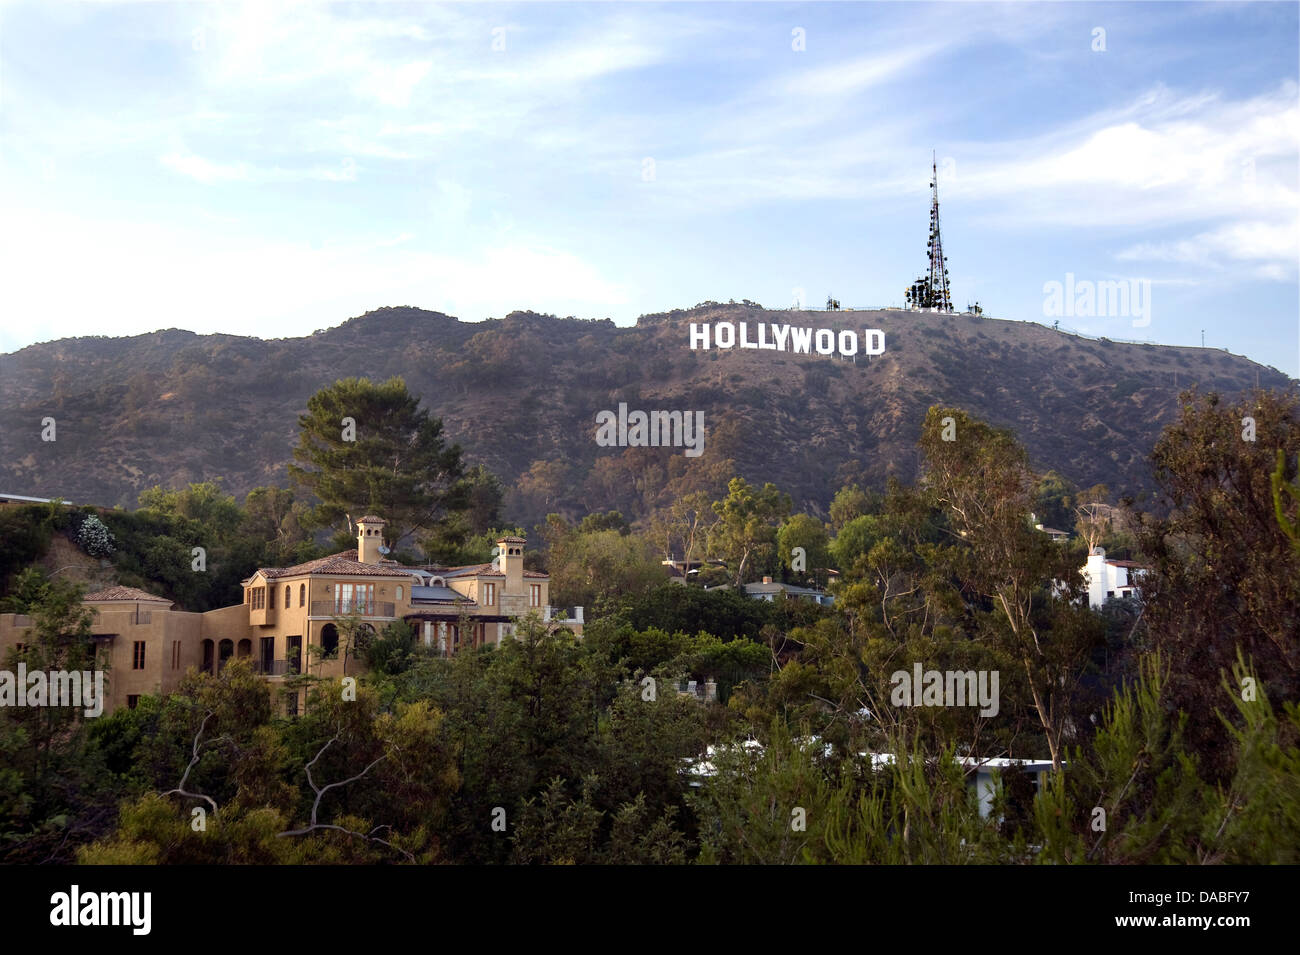 The iconic Hollywood Sign - Stock Image